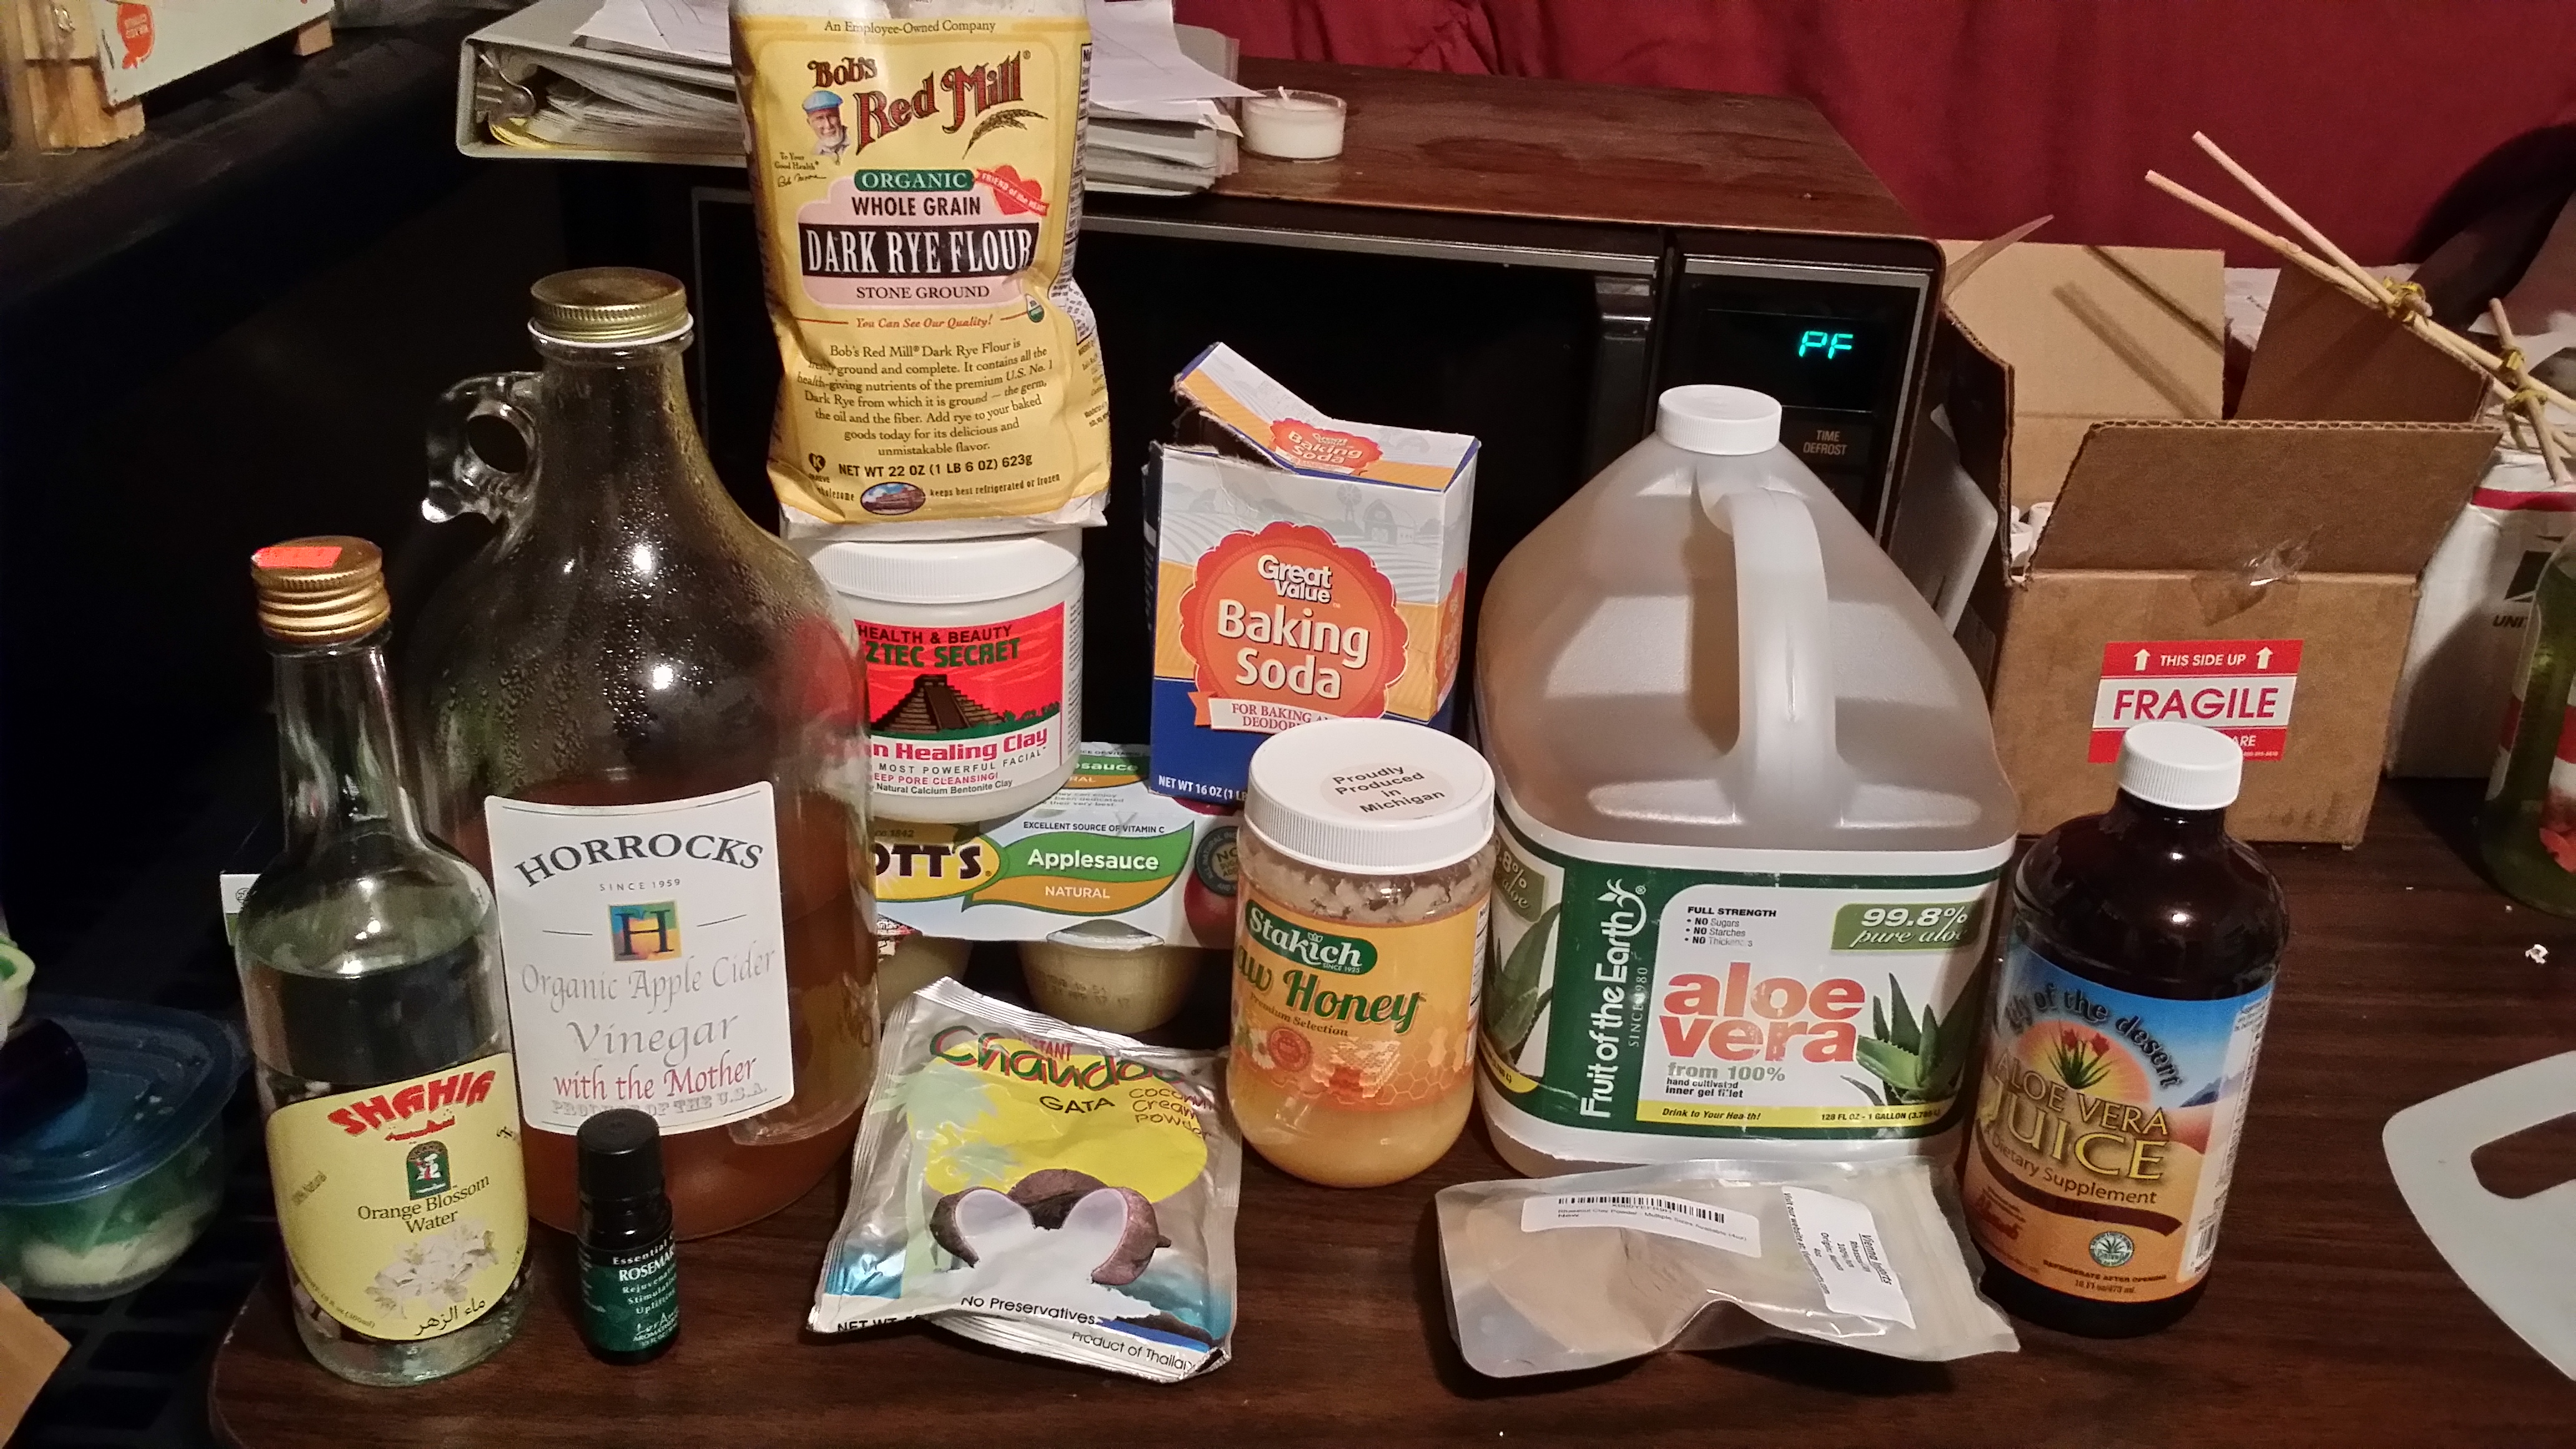 Baking soda, apple cider vinegar, honey, aloe, two kinds of clay, etc.